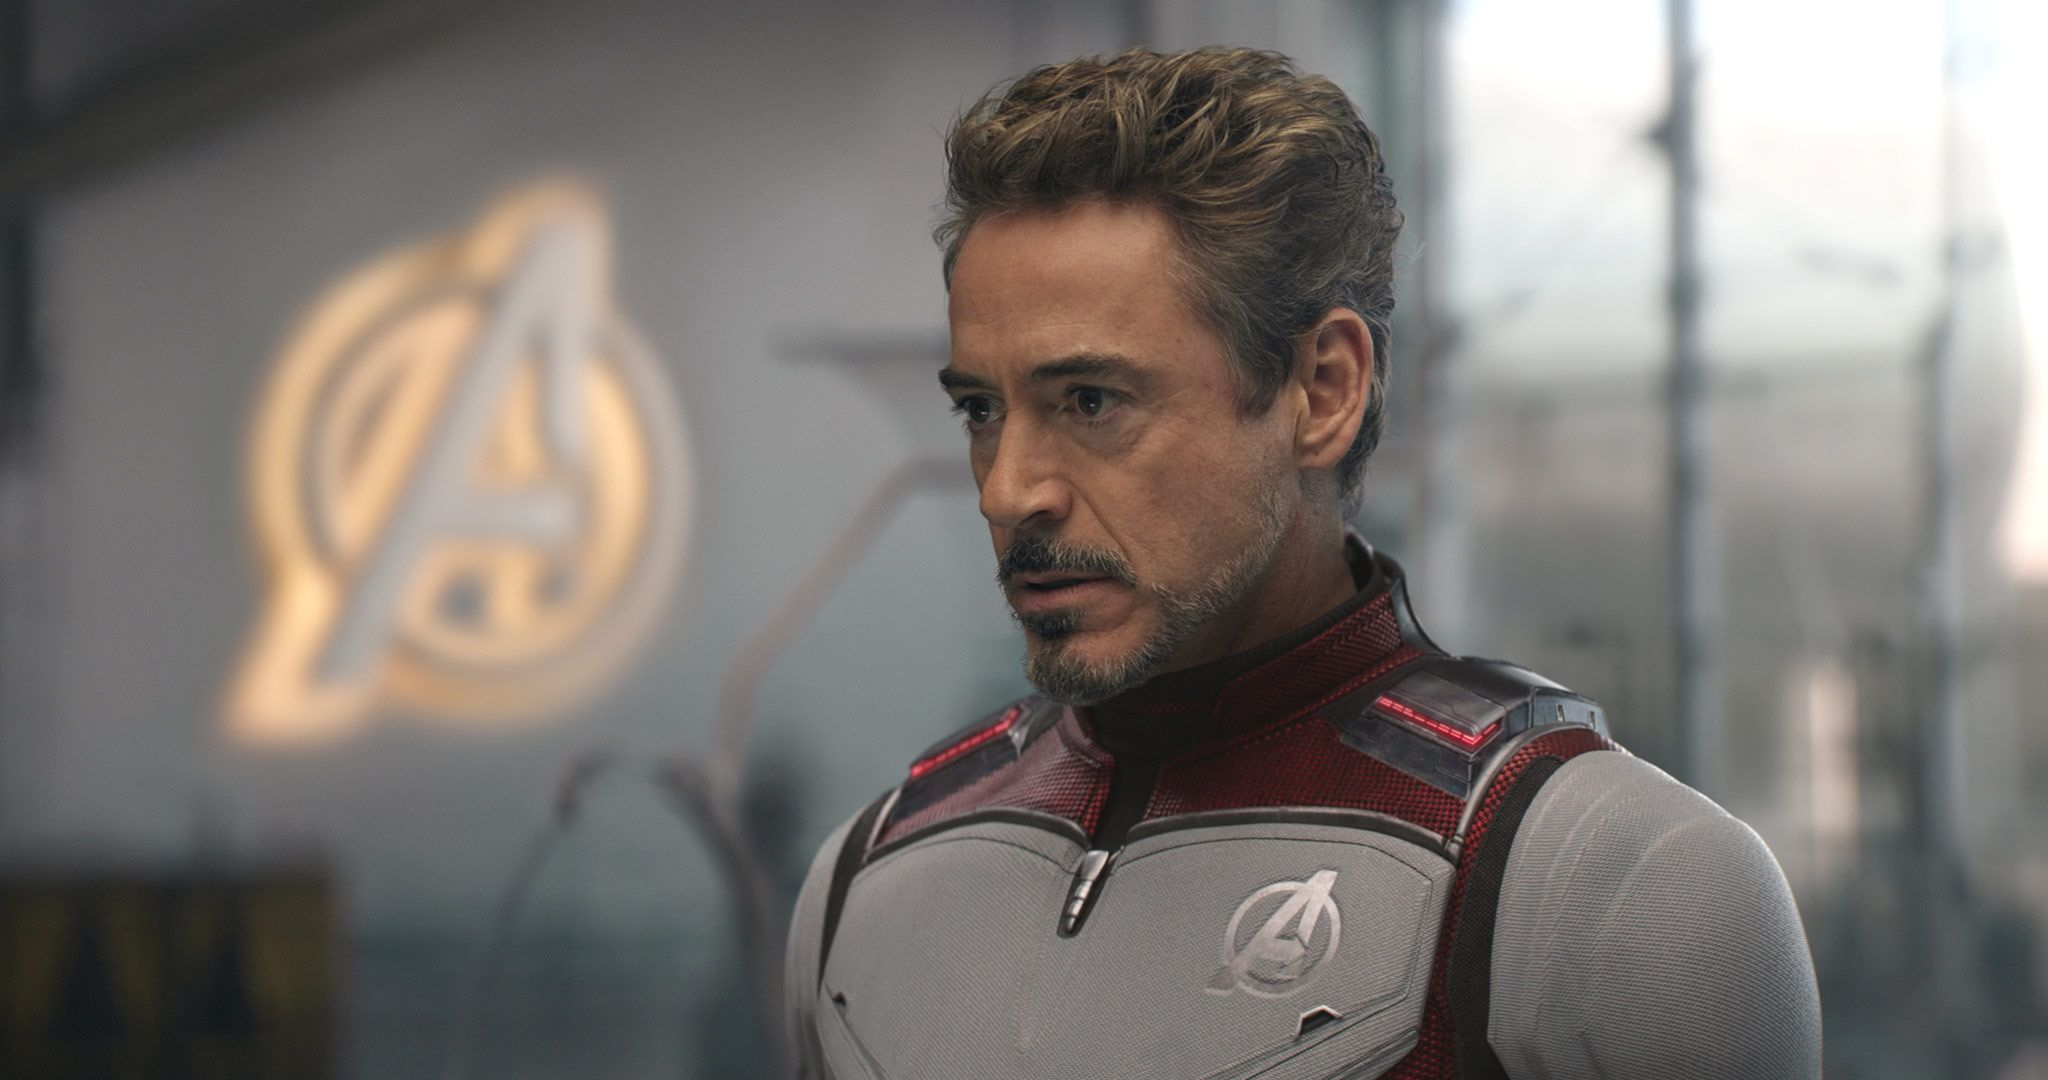 Avengers Endgame fan theory suggests how Tony Stark could return